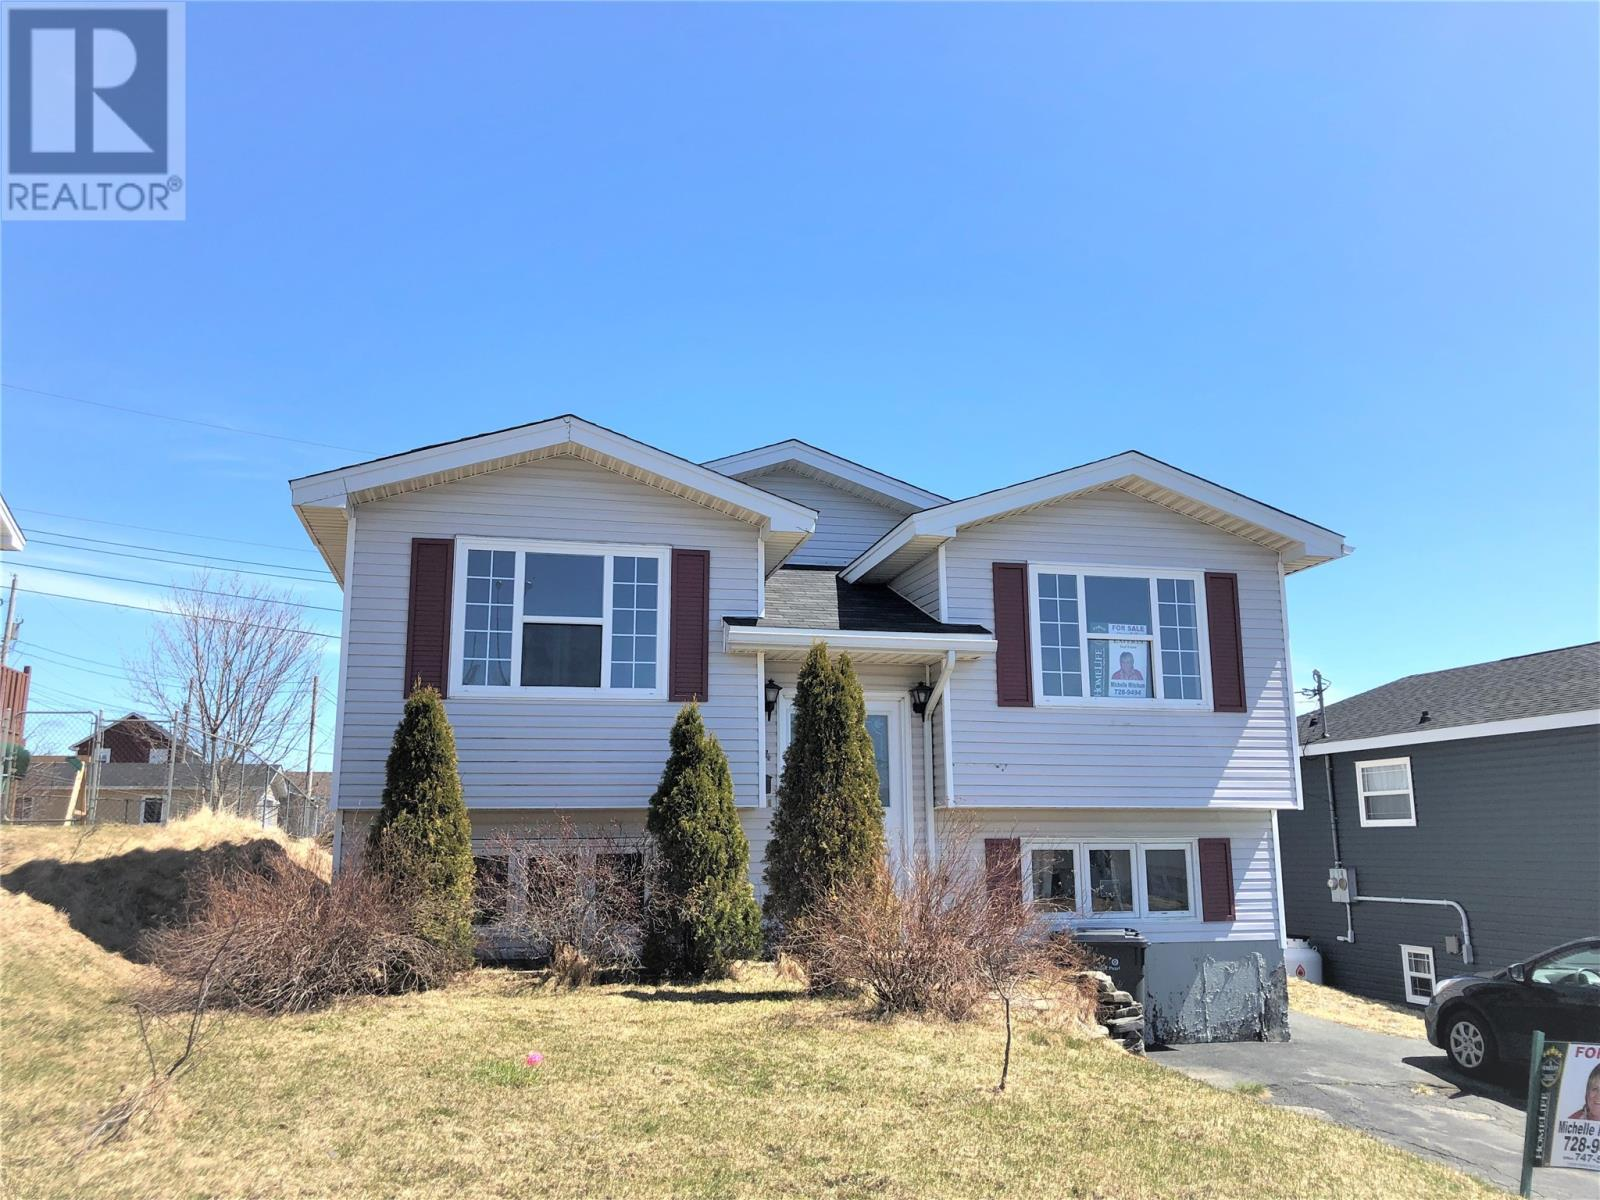 Removed: 4 Pinware Crescent, Mount Pearl, NL - Removed on 2019-07-11 06:21:25